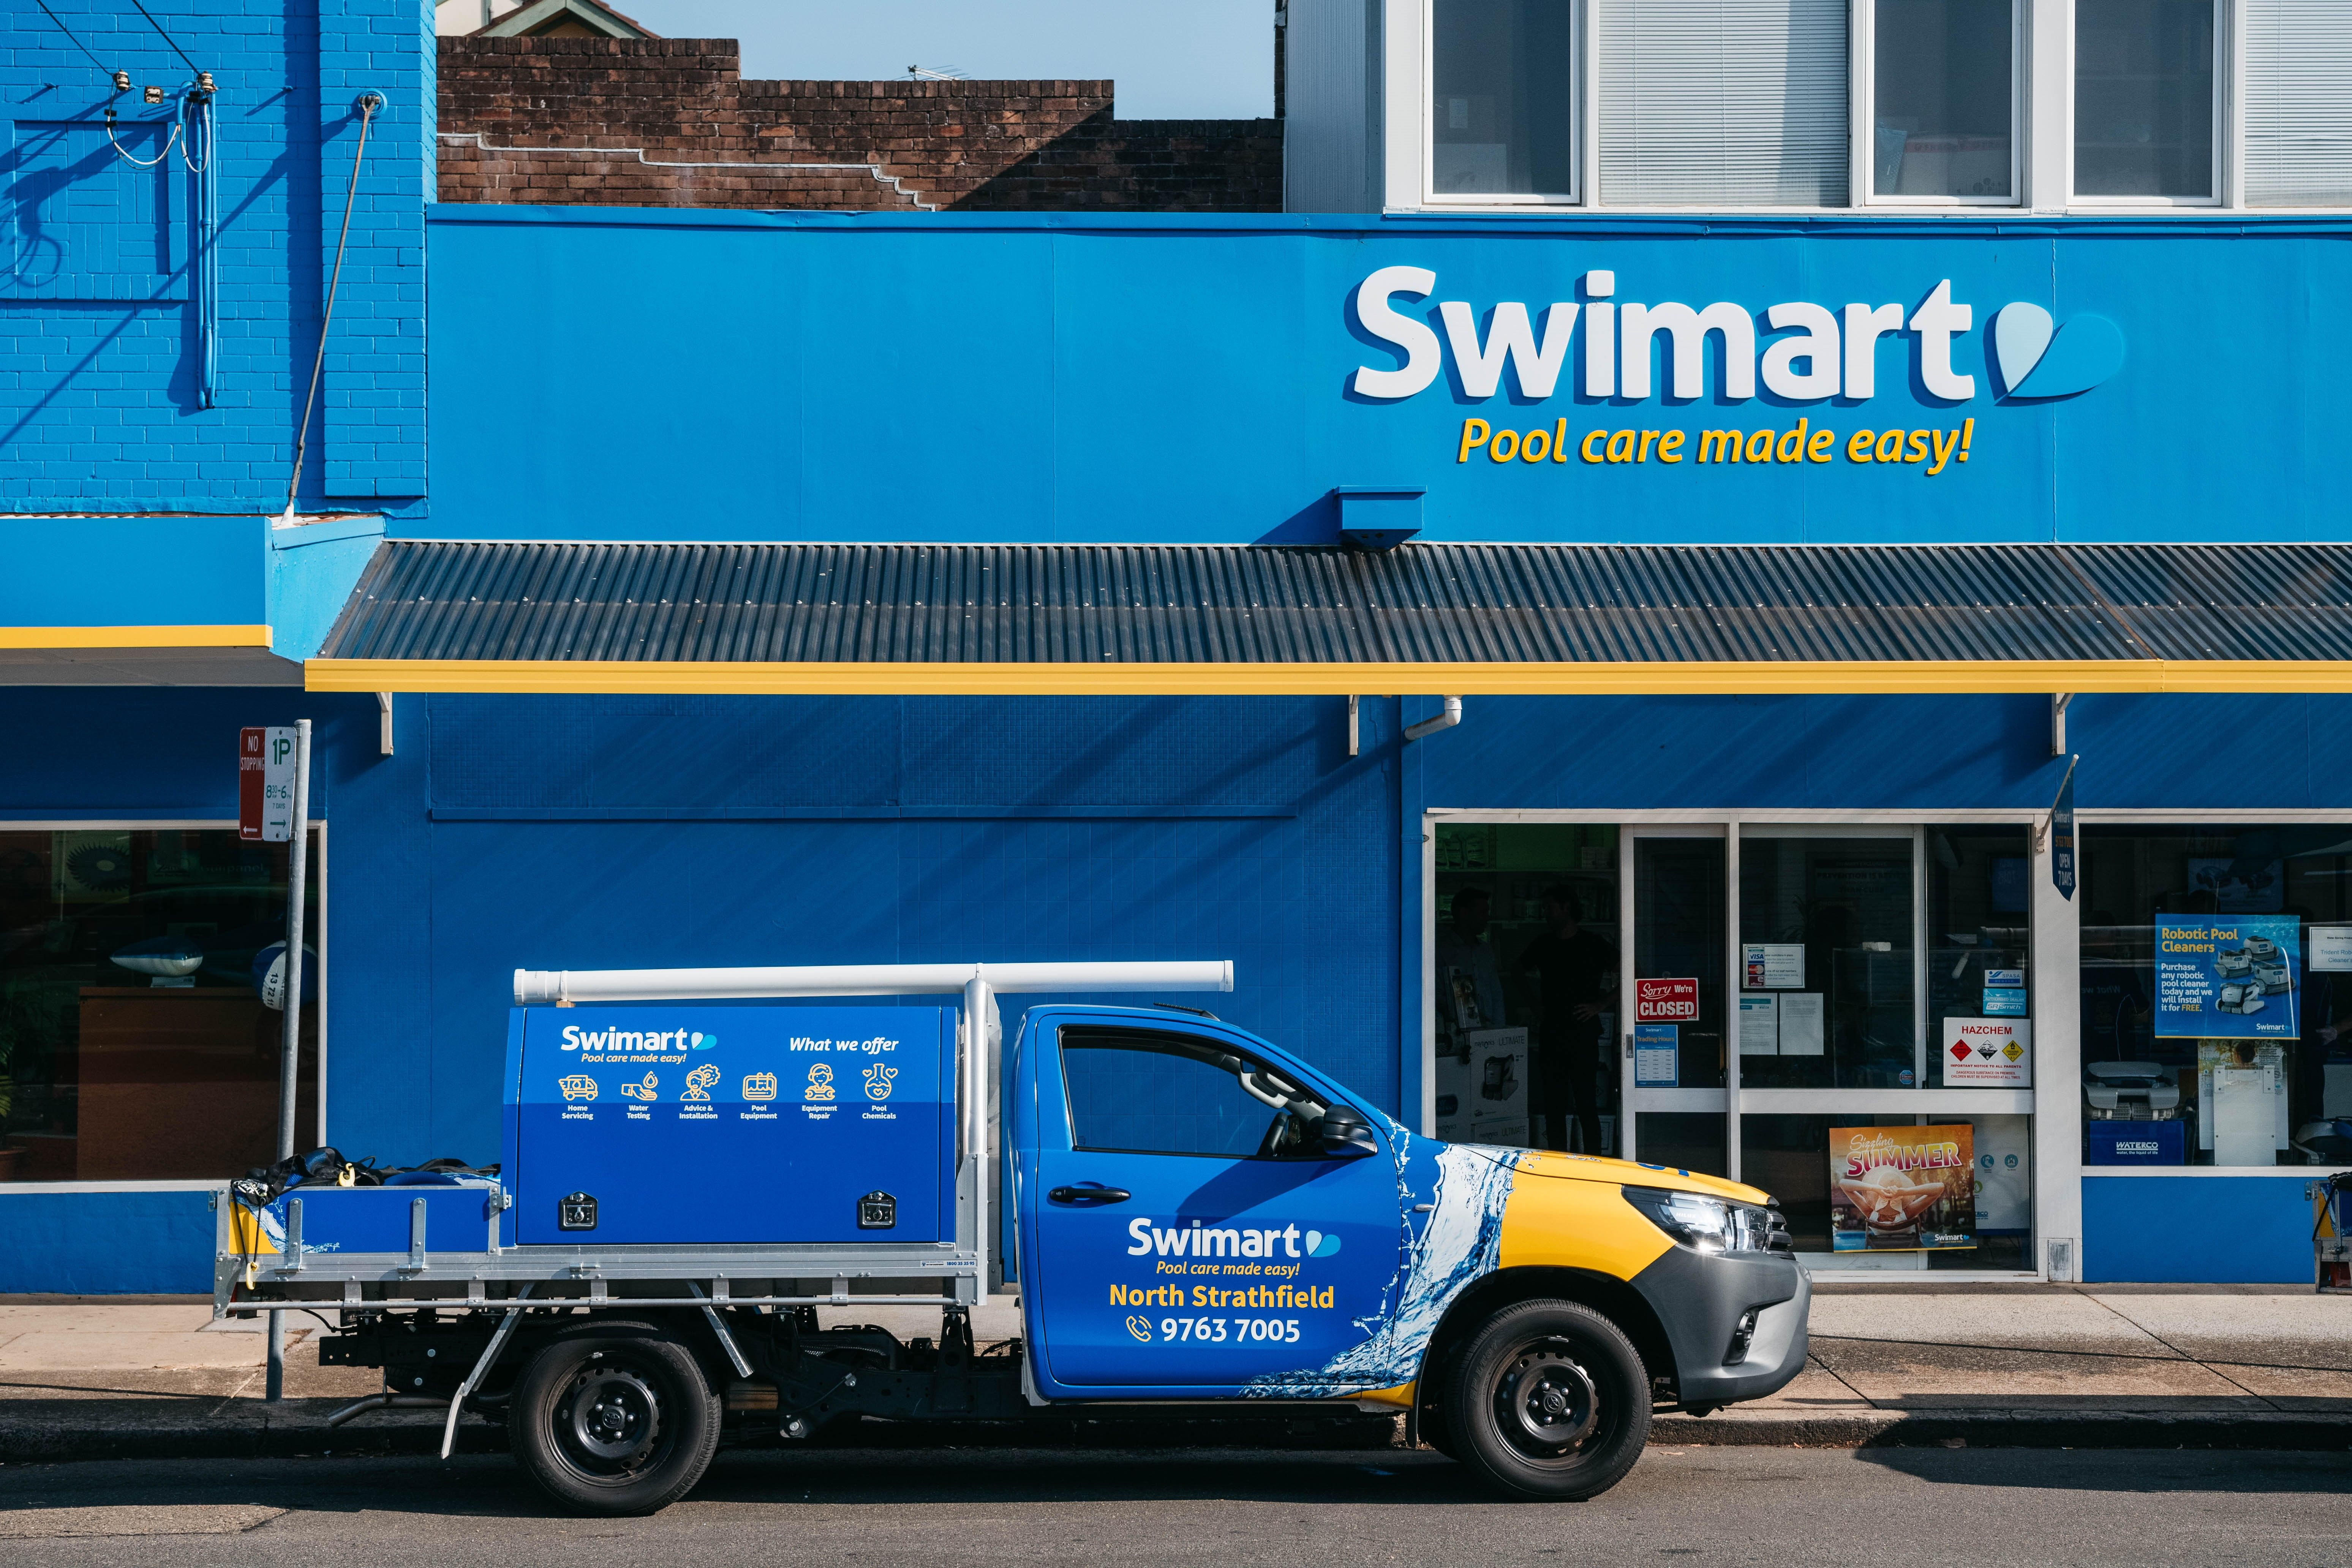 Swimart's new look | Inside Franchise Business Executive